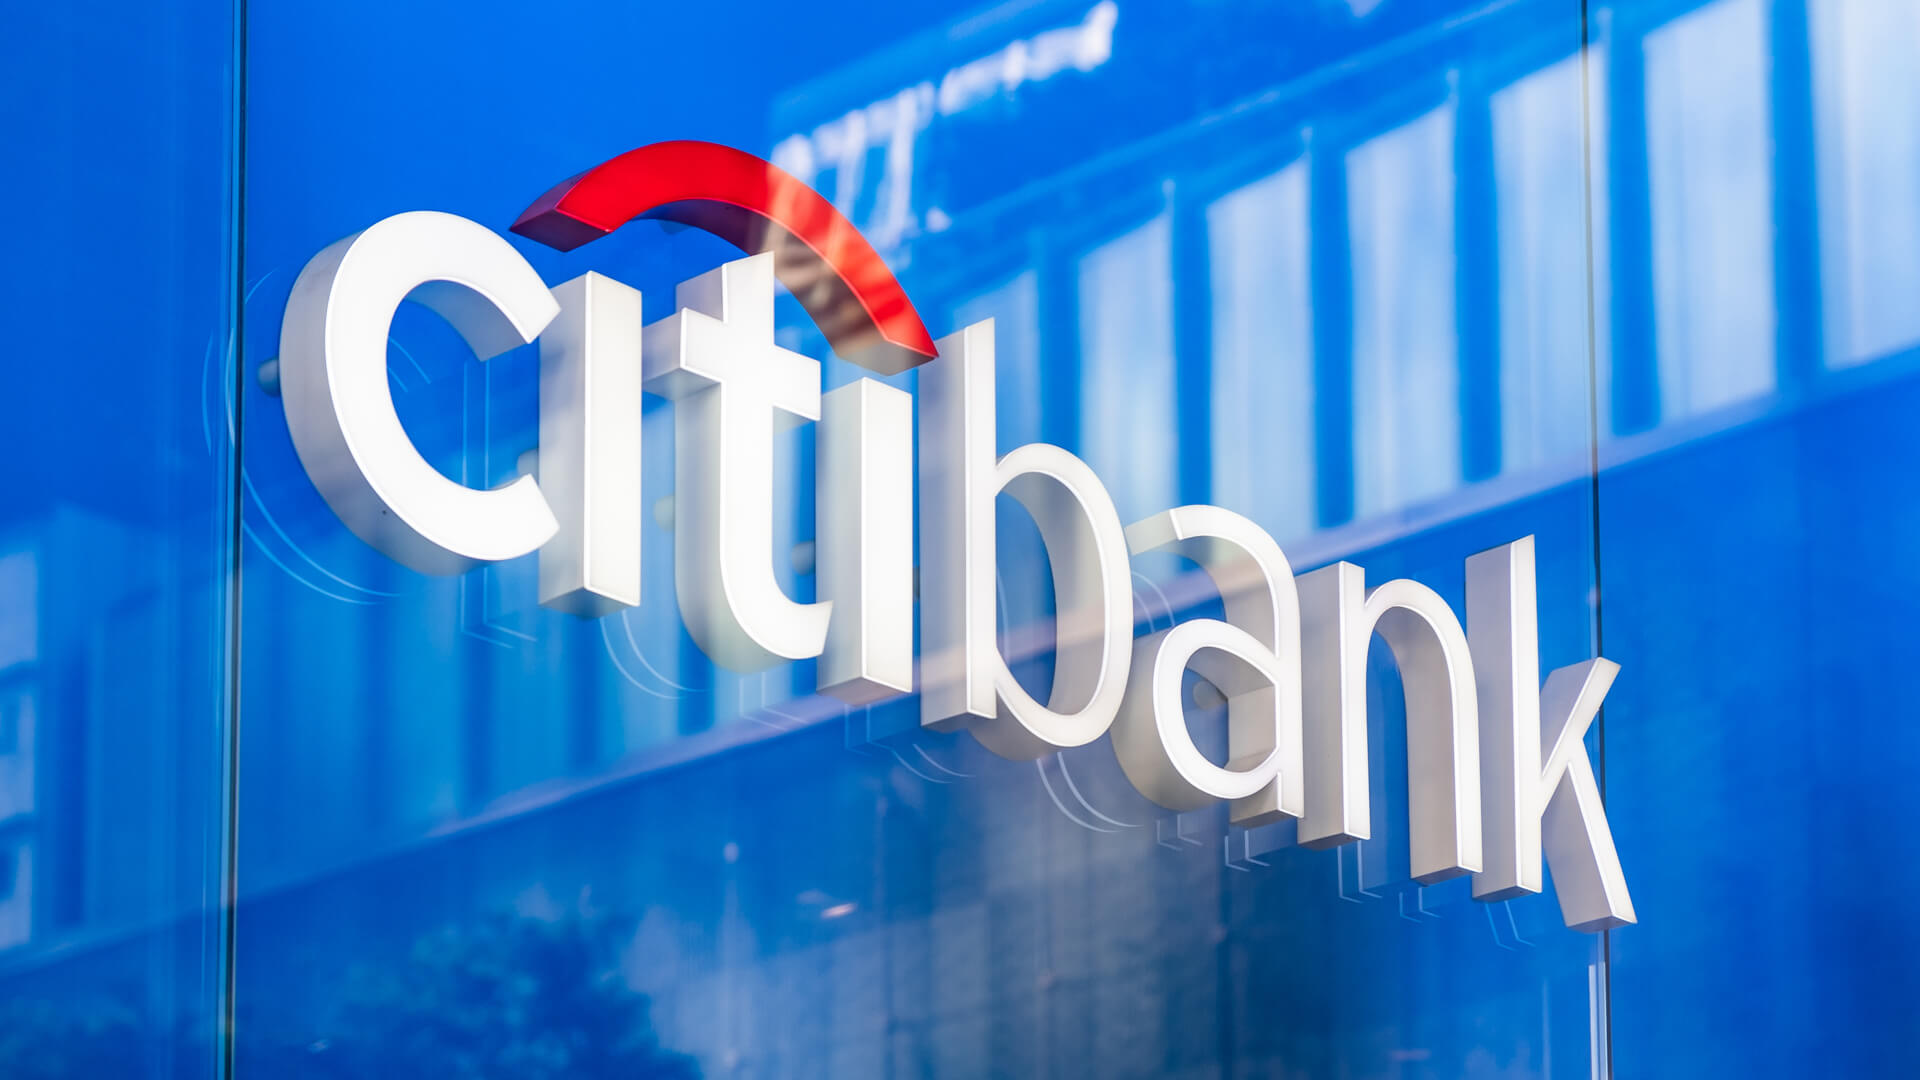 Here's Your Citibank Routing Number | GOBankingRates